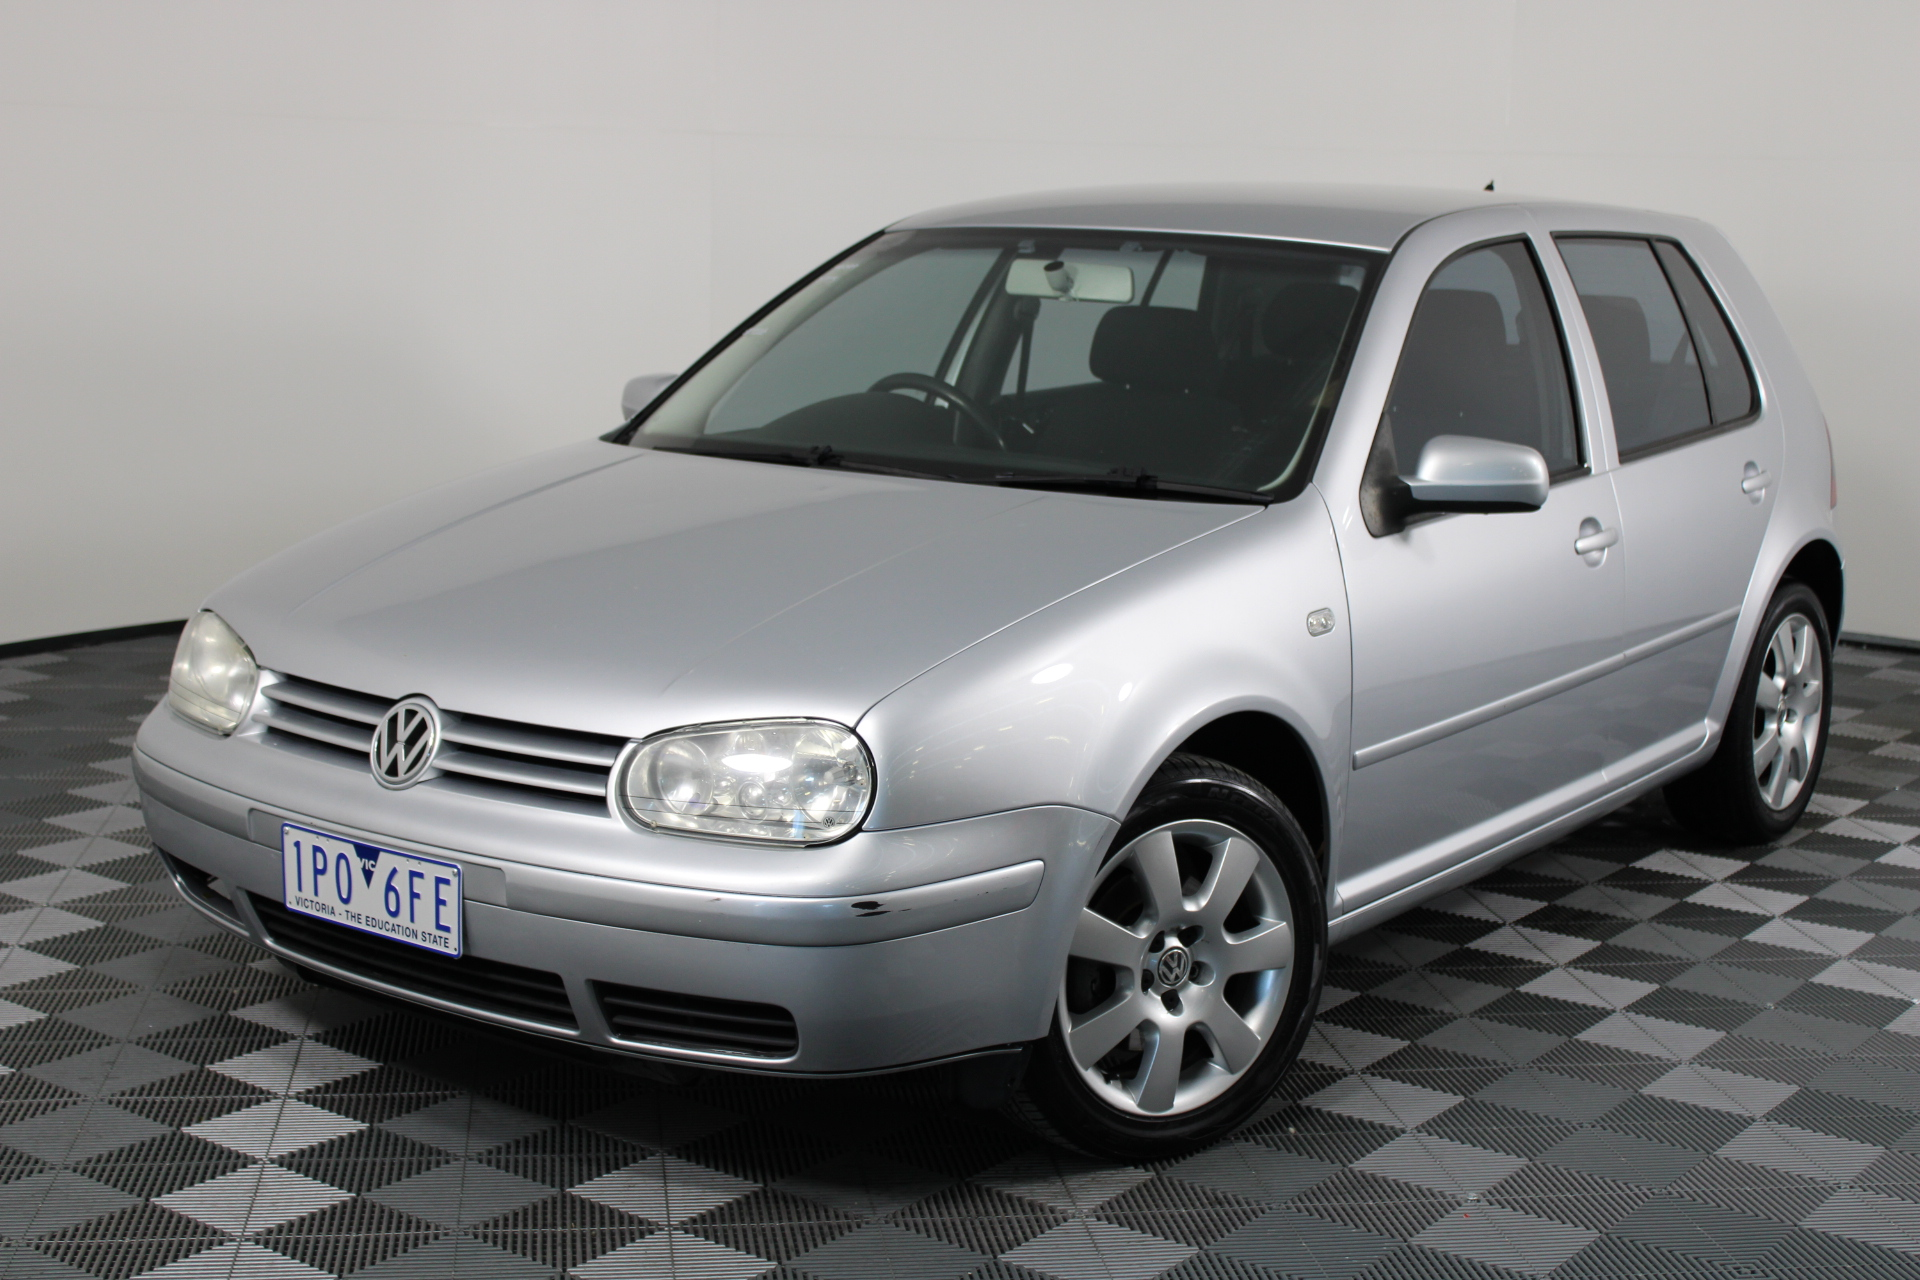 2004 Volkswagen Golf 2.0 Sport A4 Automatic Hatchback